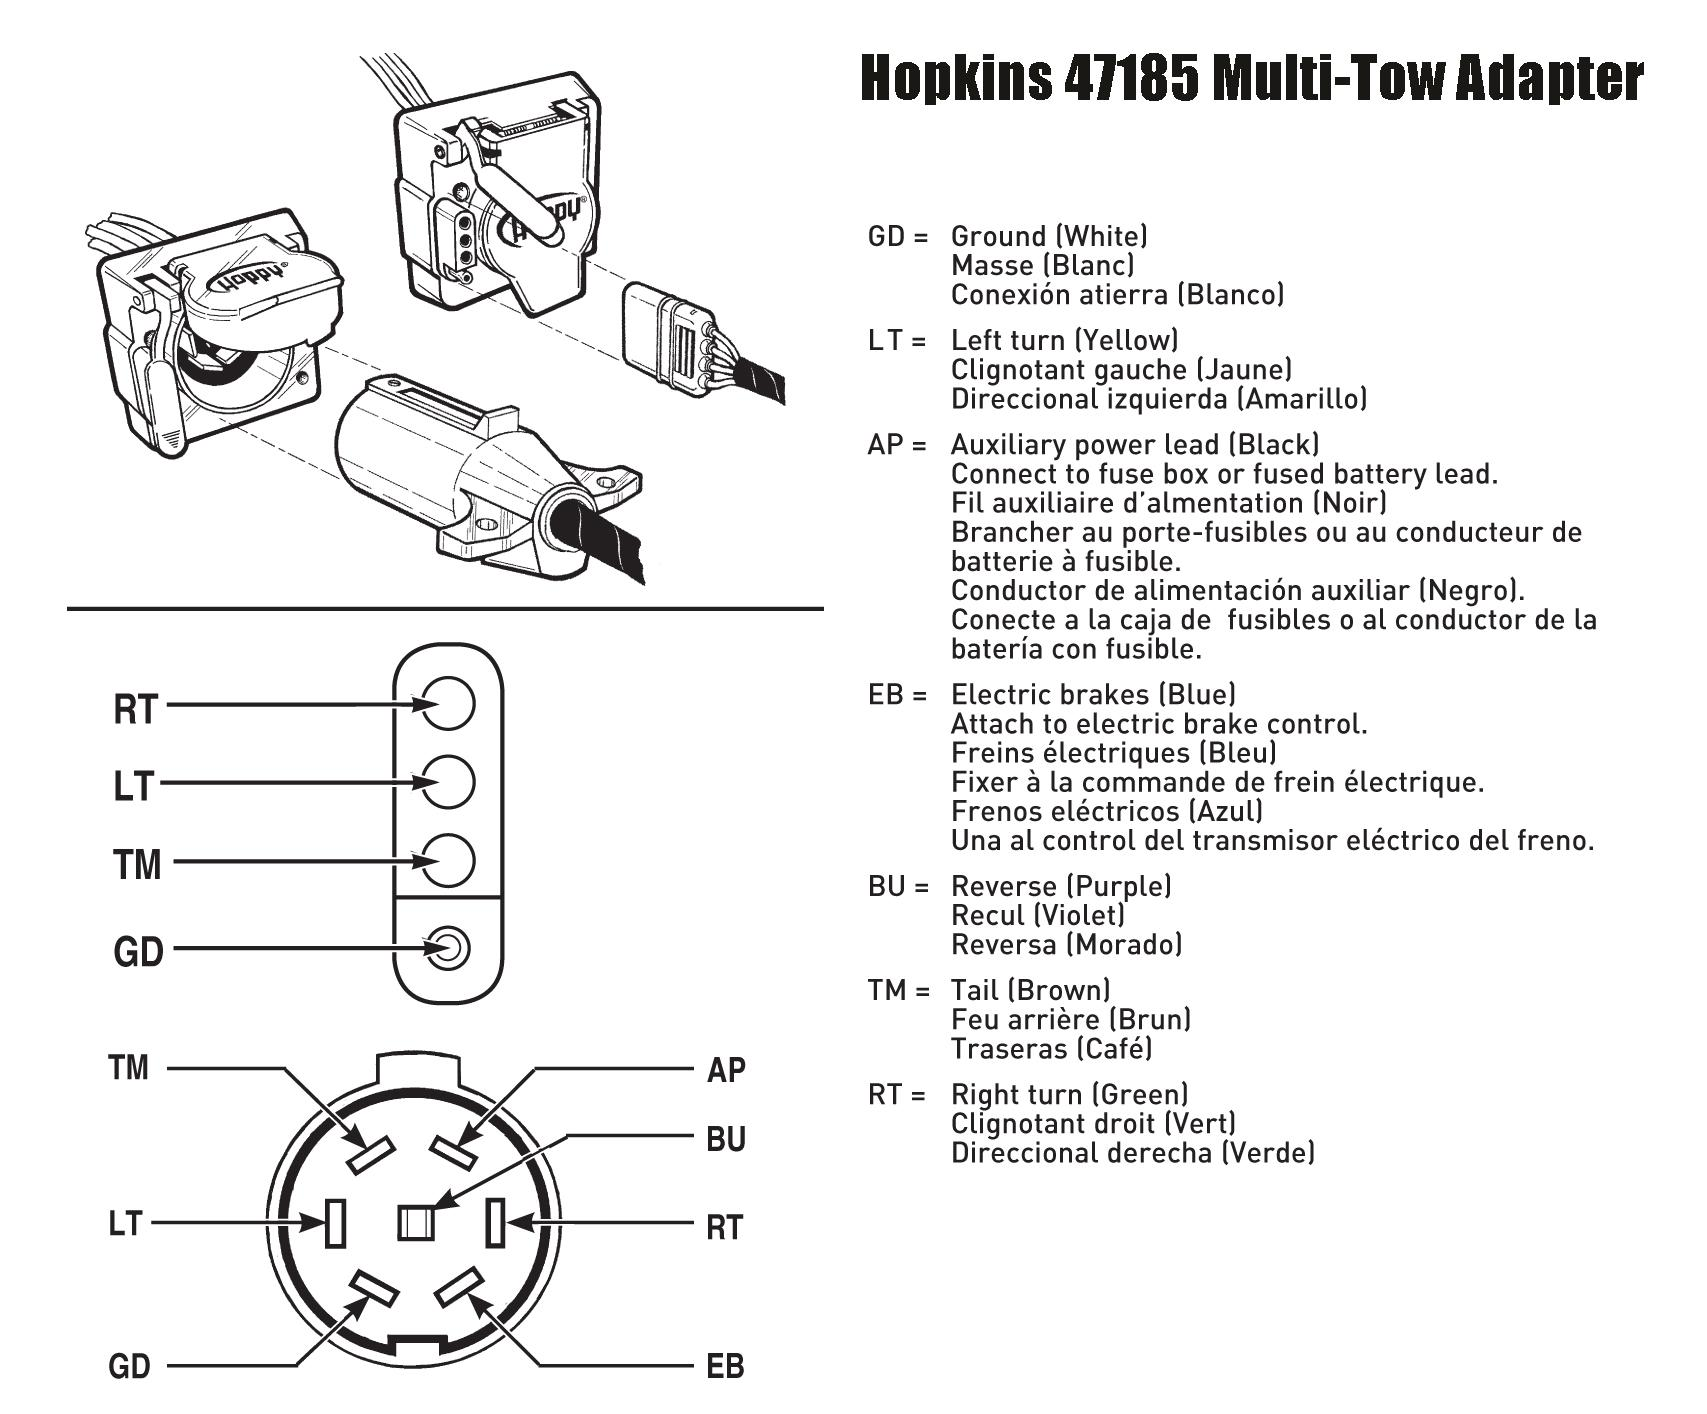 0d22c225 acd2 4cc5 9699 5dddda813b86._CB292159796__SR300300_ amazon com hopkins 47185 multi tow adapter automotive hopkins 48470 wiring diagram at soozxer.org